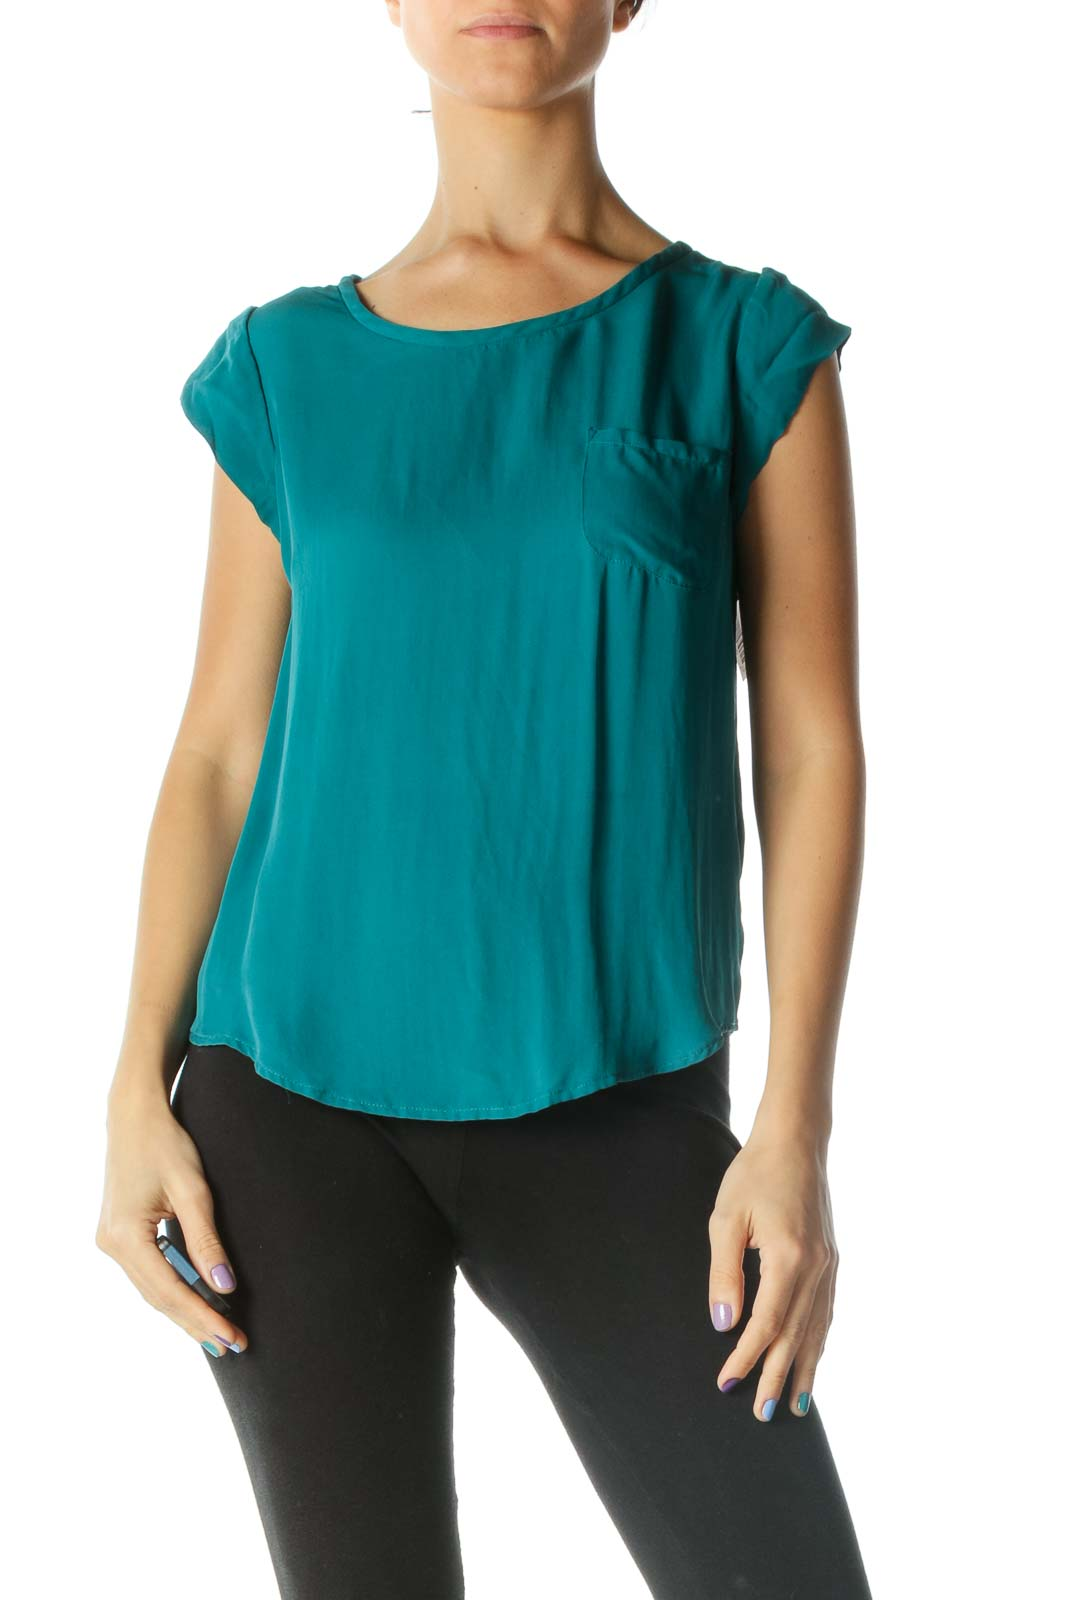 Green Cap Sleeve Round Neck Blouse Front